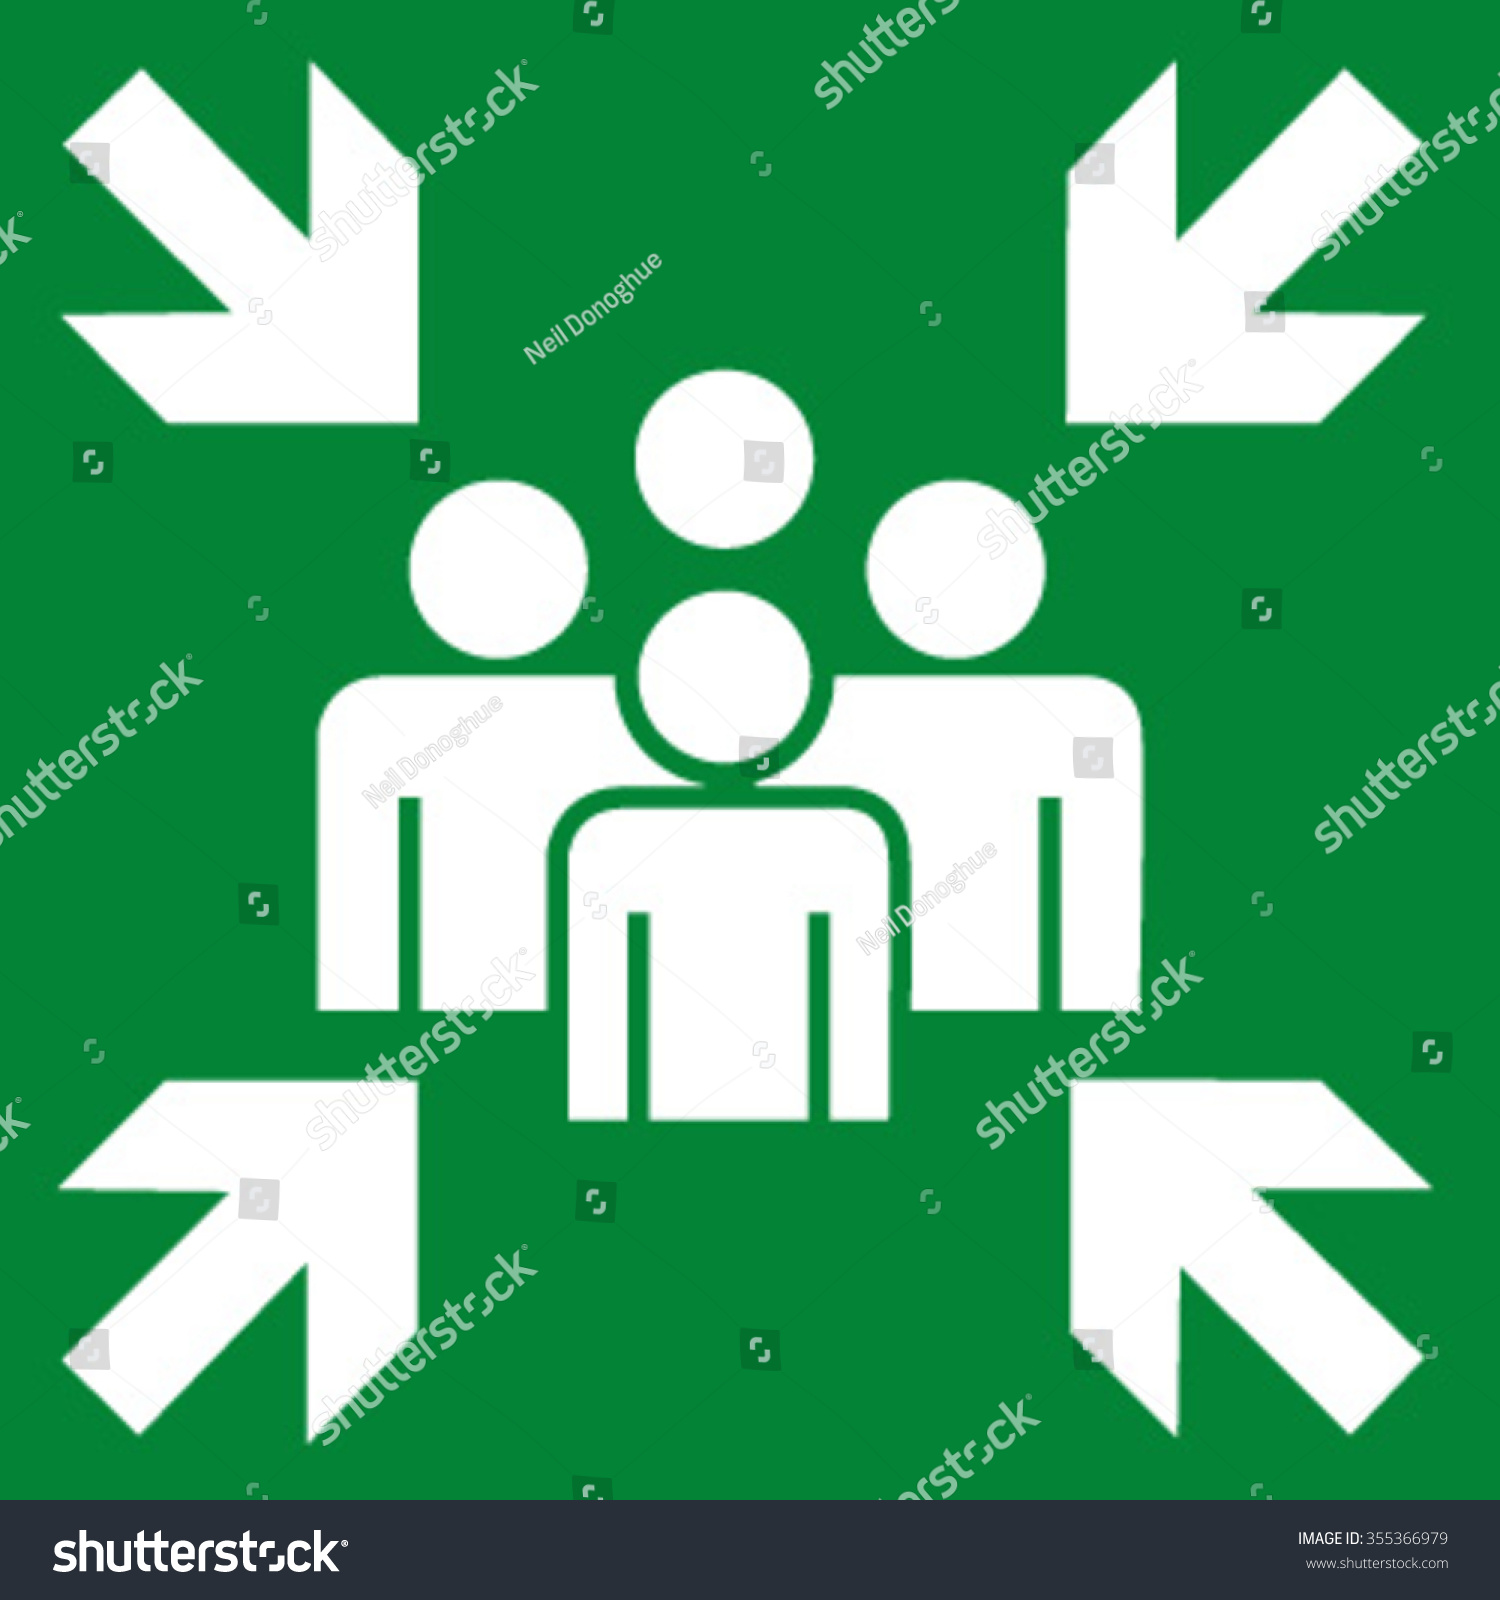 Royalty Free Fire Evacuation Meeting Point 355366979 Stock Photo